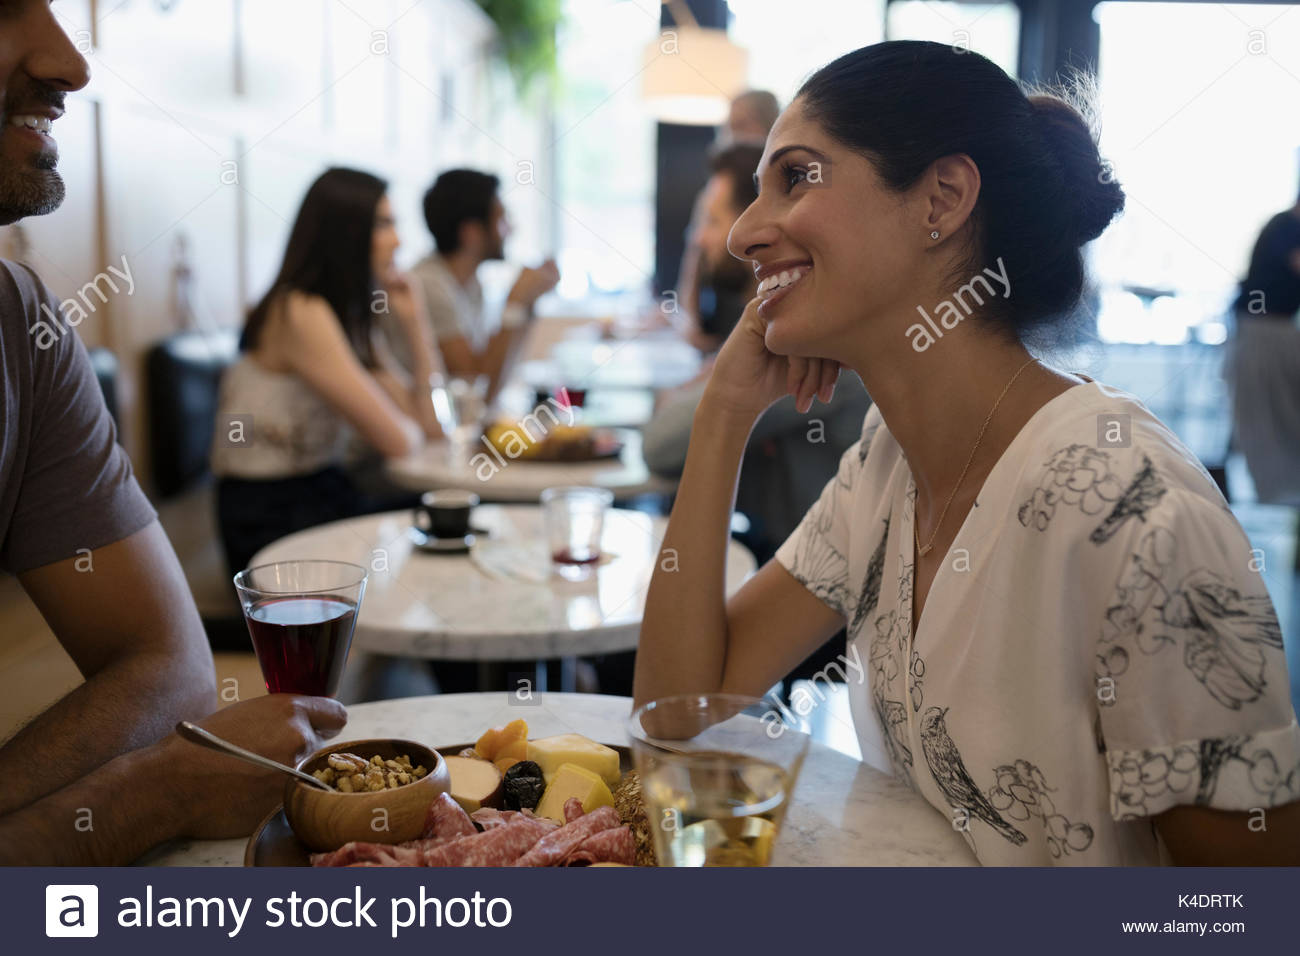 Woman smiling at boyfriend, eating and drinking wine at cafe table - Stock Image